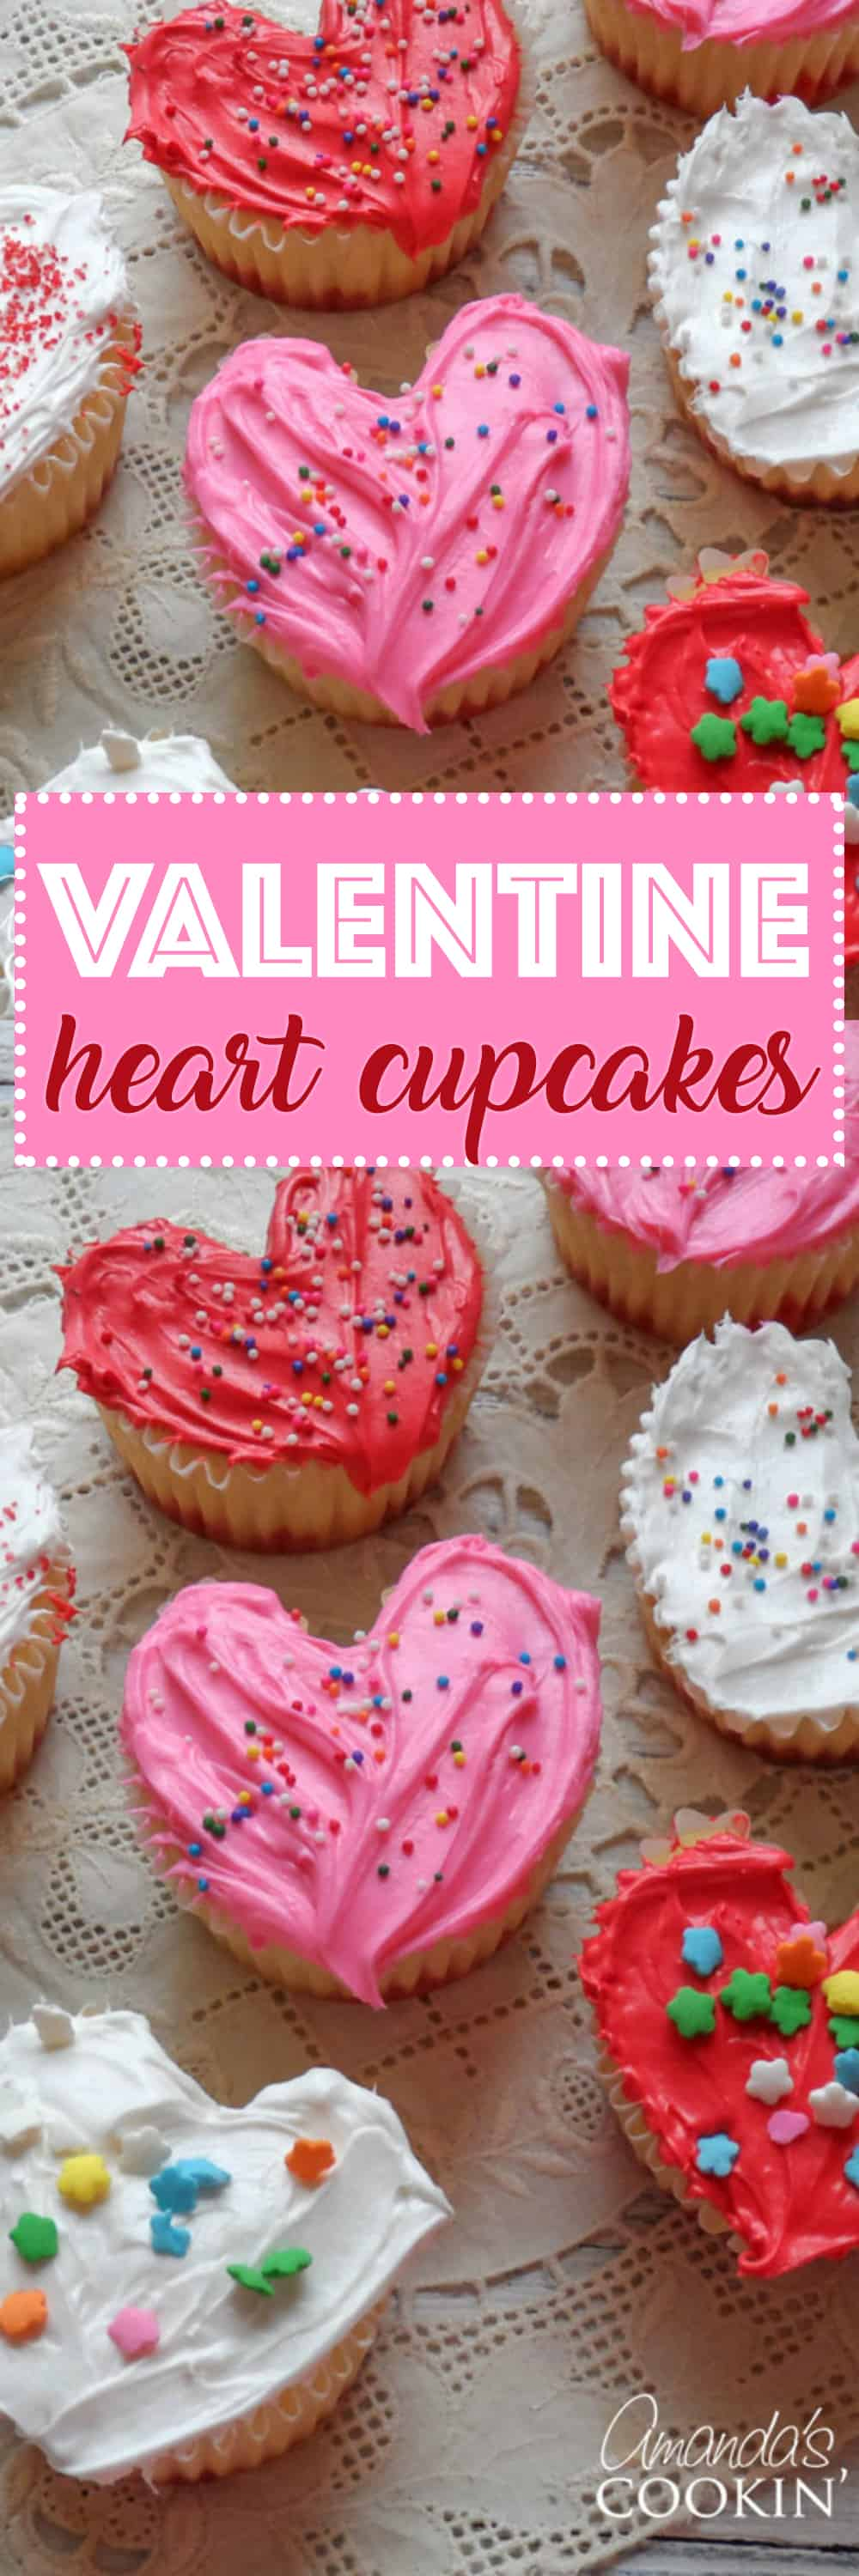 Valentine Cupcakes Frosted Hearts for Valentines Day